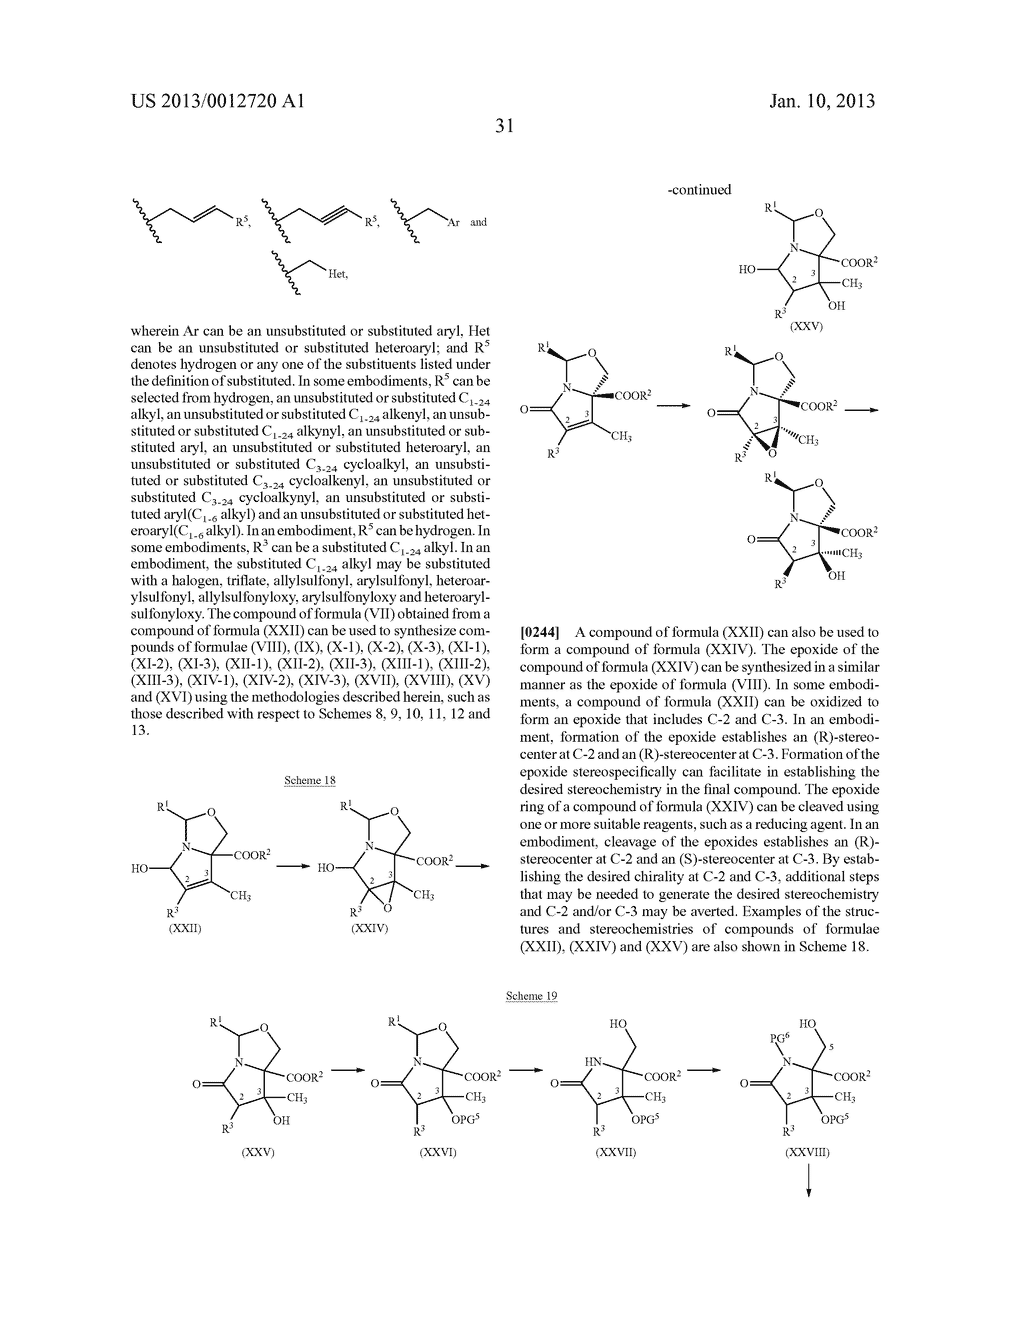 TOTAL SYNTHESIS OF SALINOSPORAMIDE A AND ANALOGS THEREOF - diagram, schematic, and image 93